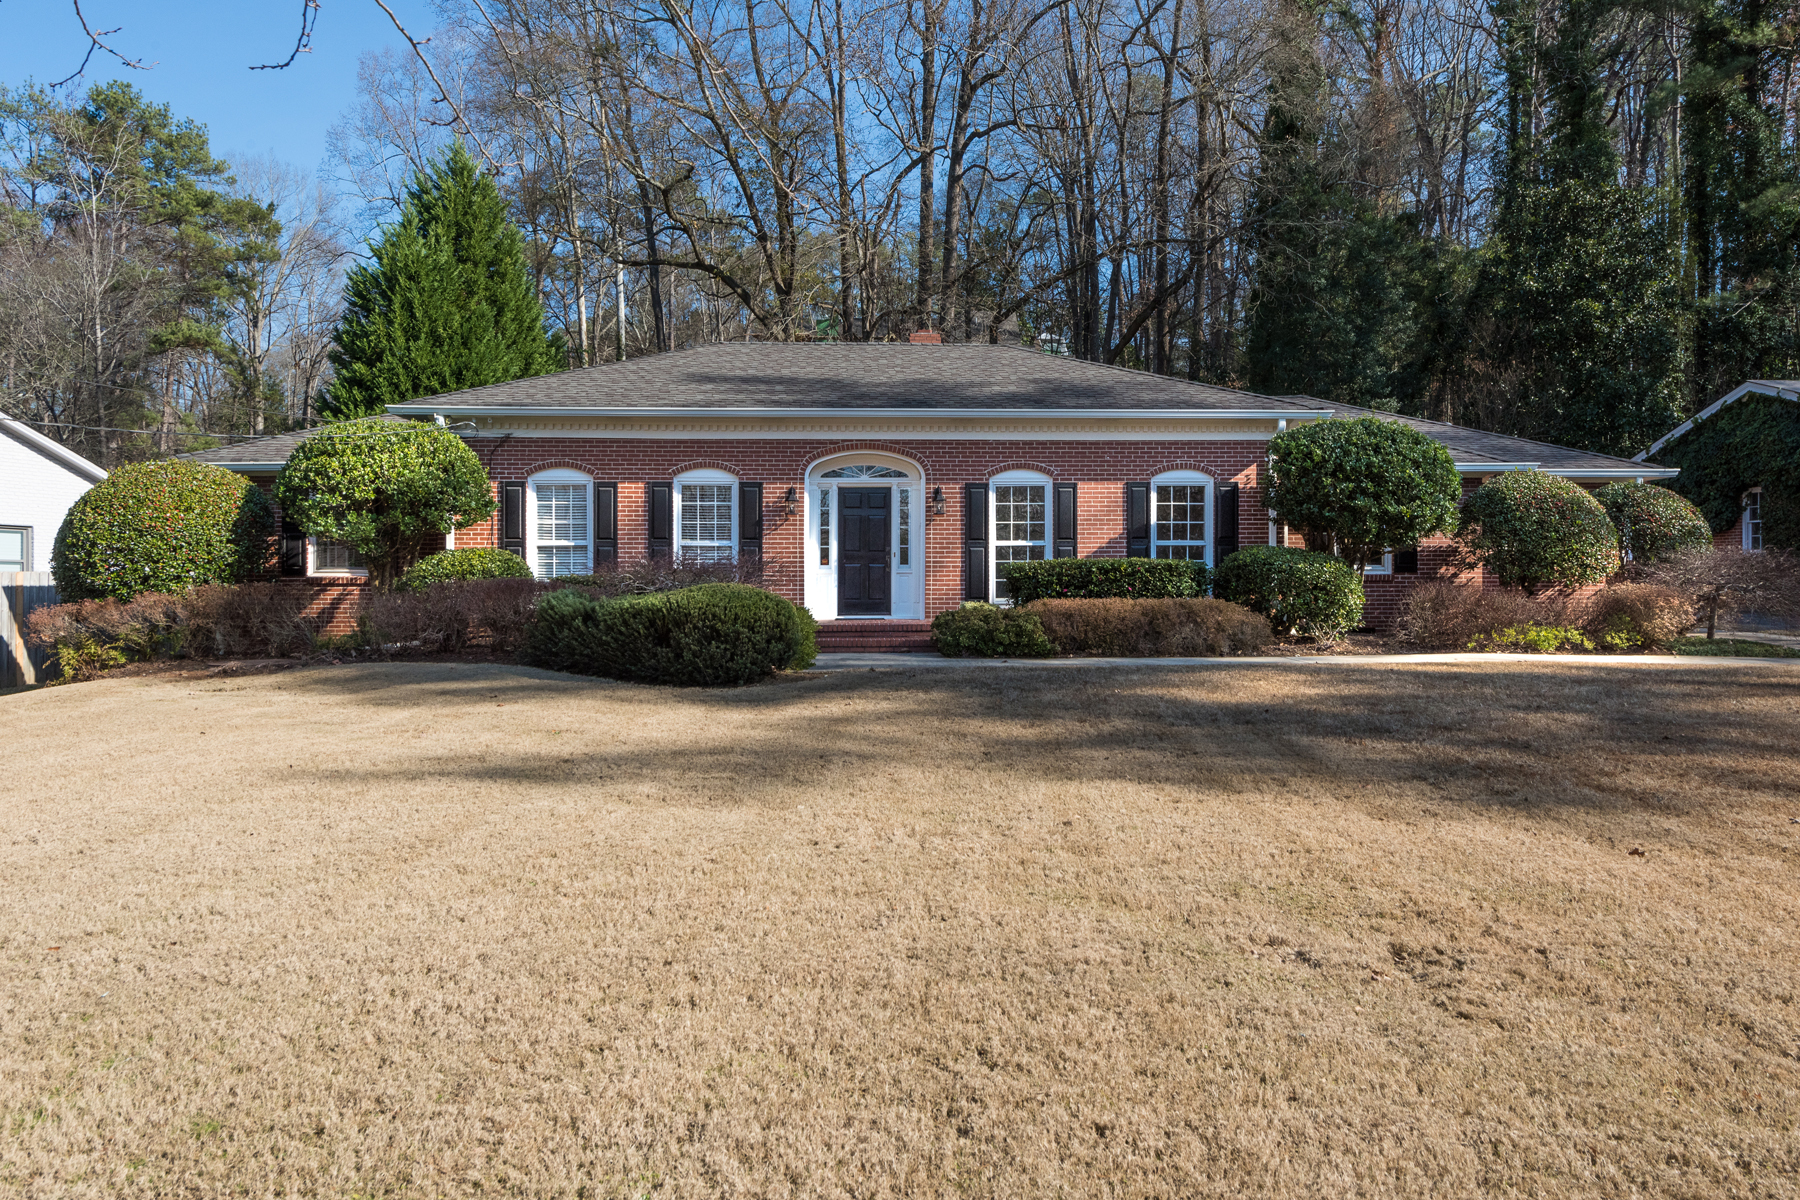 Tek Ailelik Ev için Satış at Fully Renovated Home On Great Flat Lot 4225 Lake Forrest Drive NE Atlanta, Georgia, 30342 Amerika Birleşik Devletleri